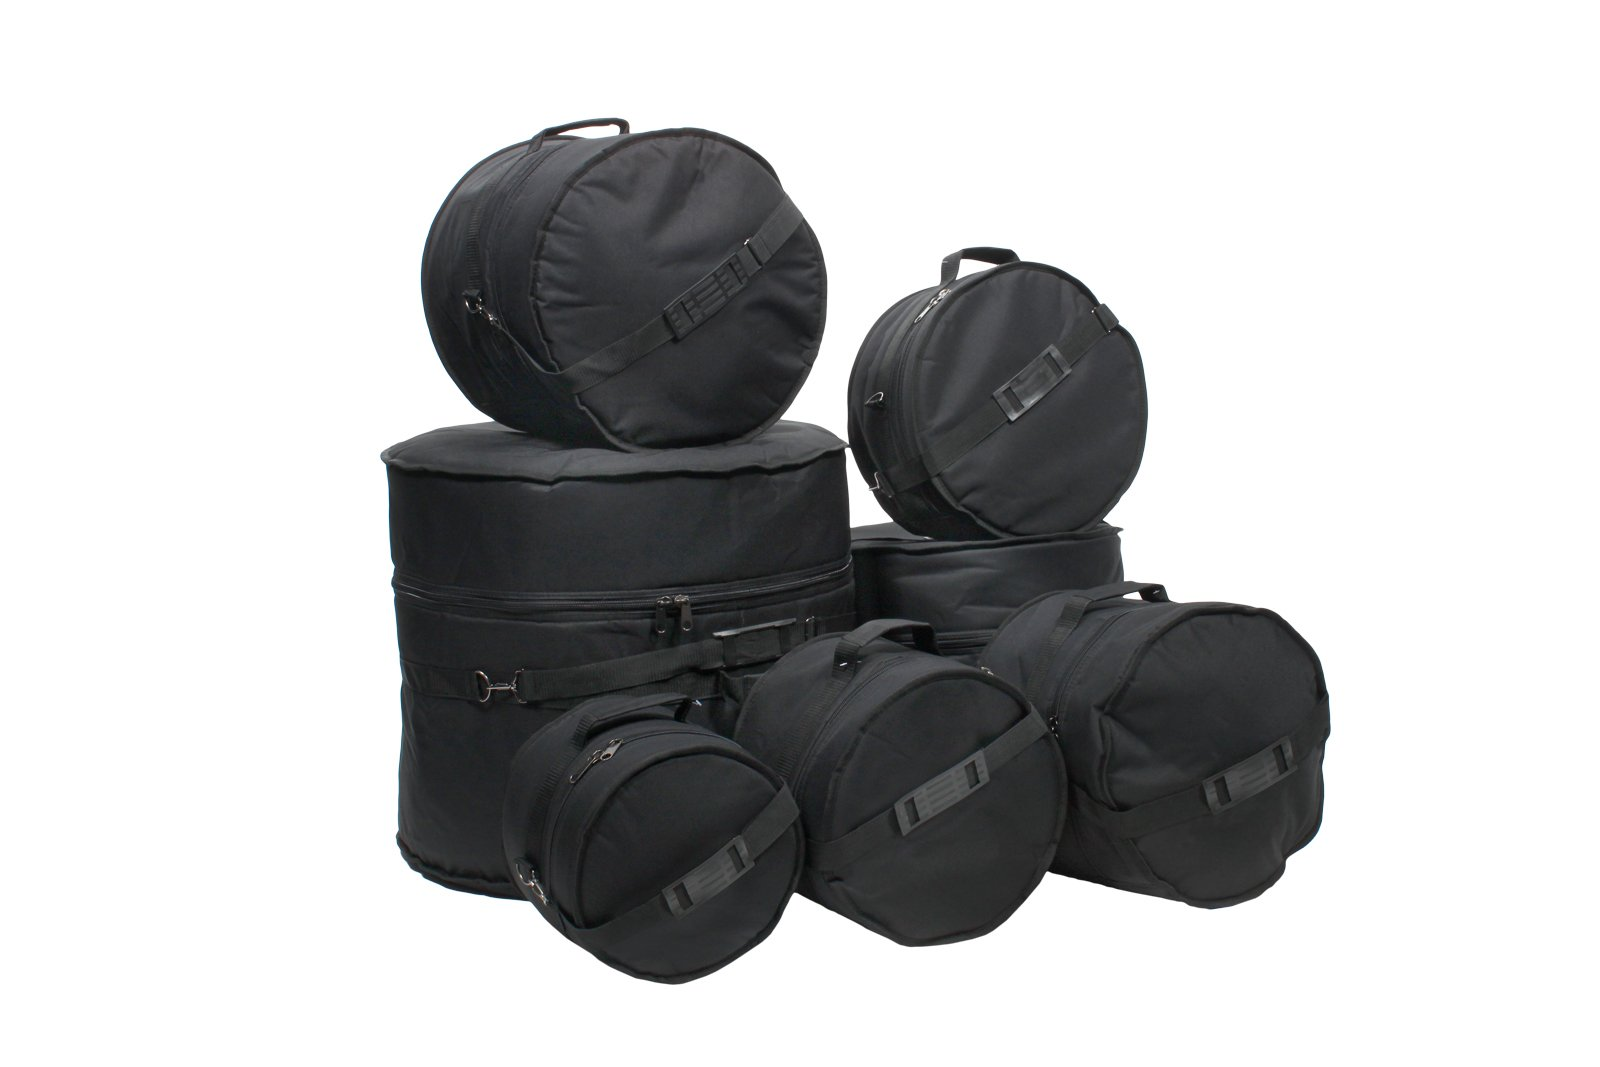 daf4e61a811 Get Quotations · XSPRO 7 Piece Deluxe Padded Drum Bag Set for Gretsch  Catalina Maple